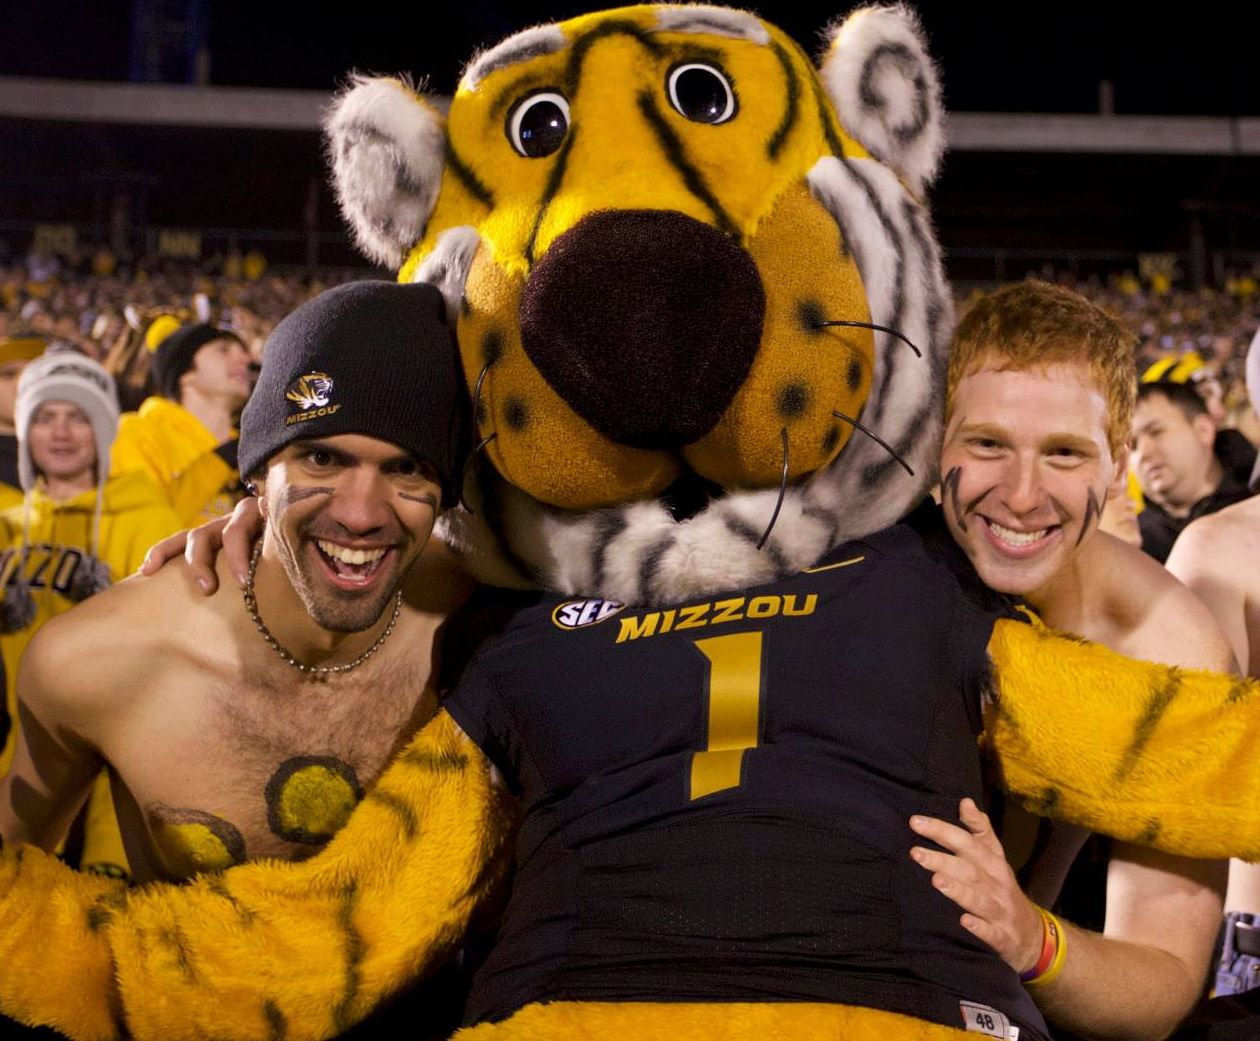 Fares Akremi, Truman the Tiger and a friend decked out in Black and Gold at a Mizzou Football game